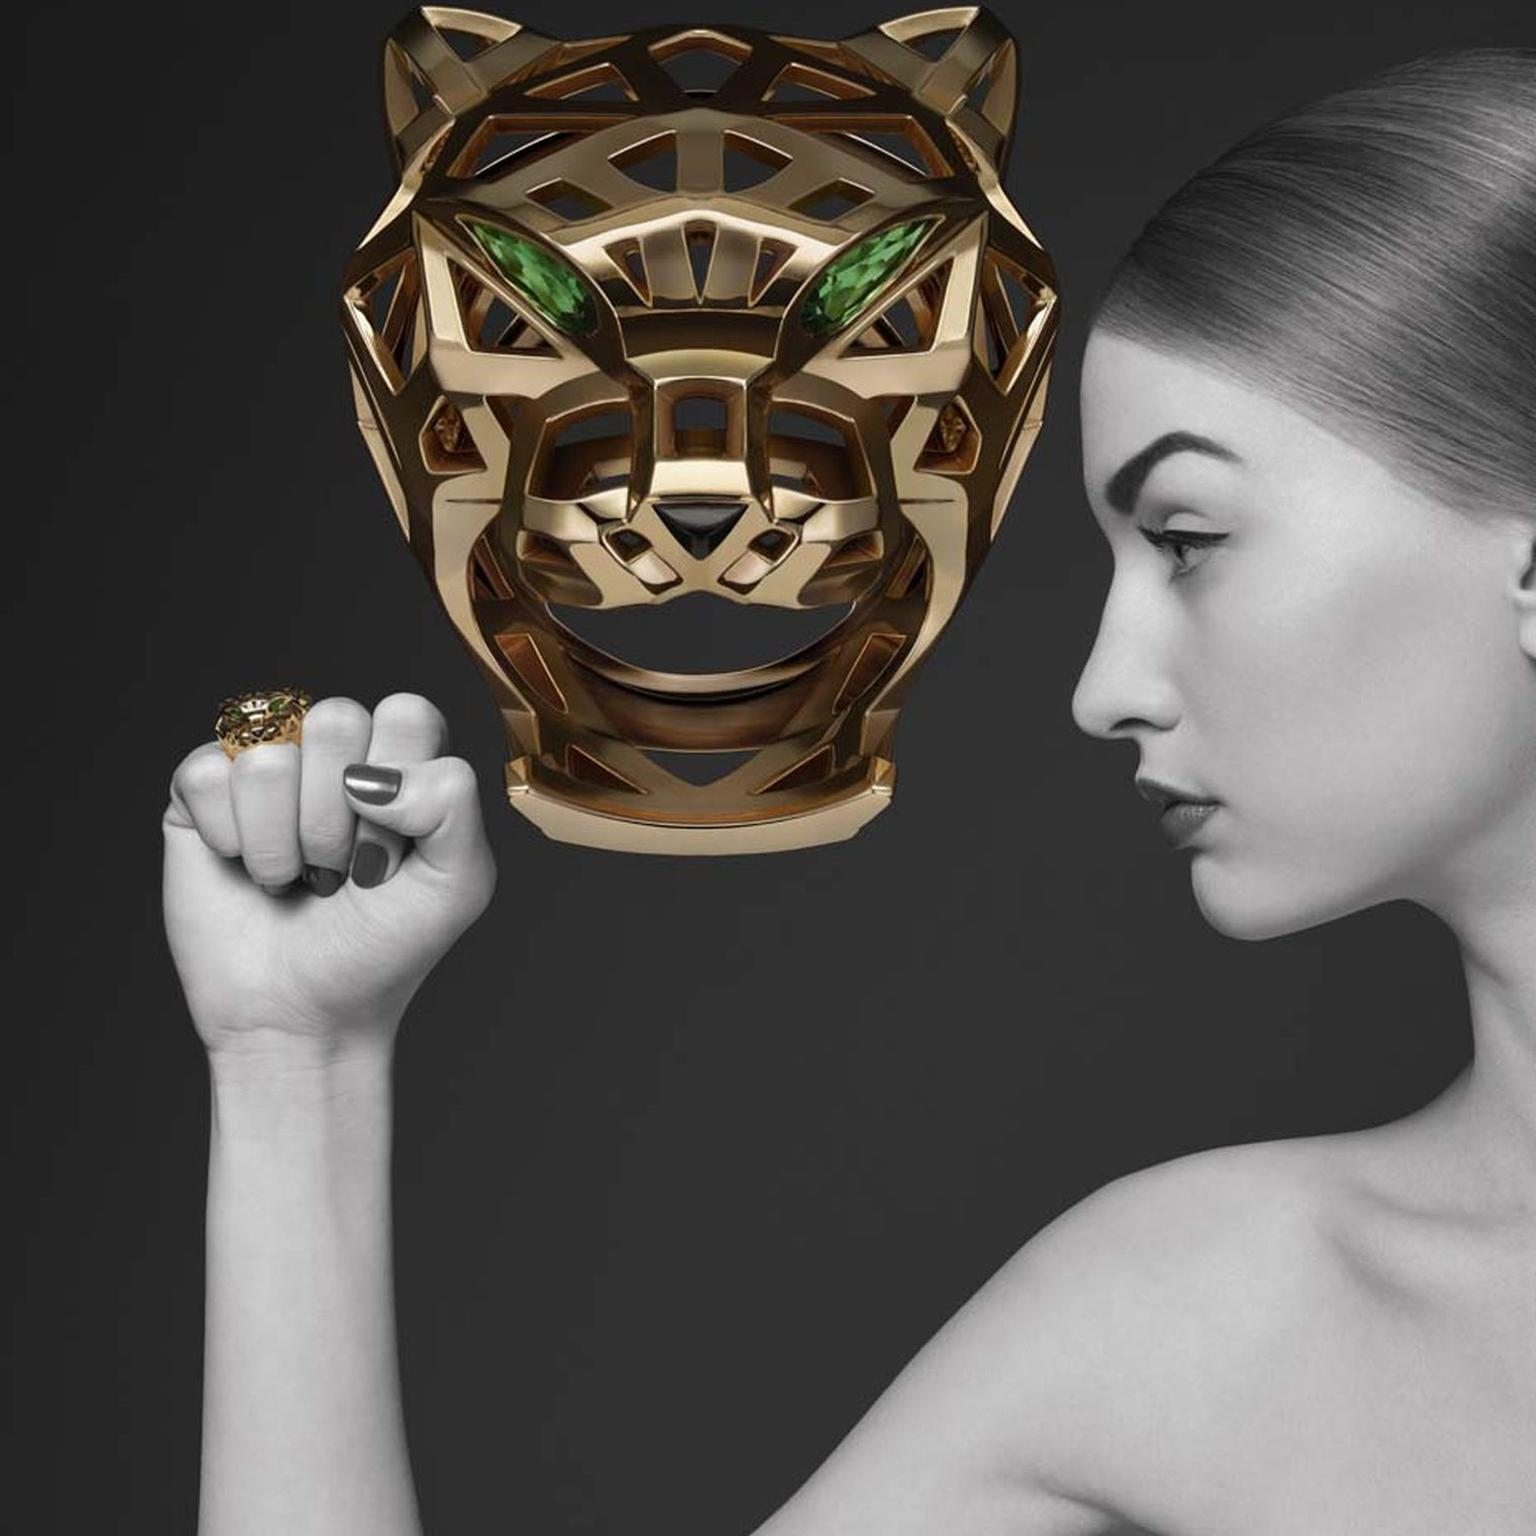 Cartier Panthère de Cartier collection yellow gold ring with onyx, tsavorite and garnets.